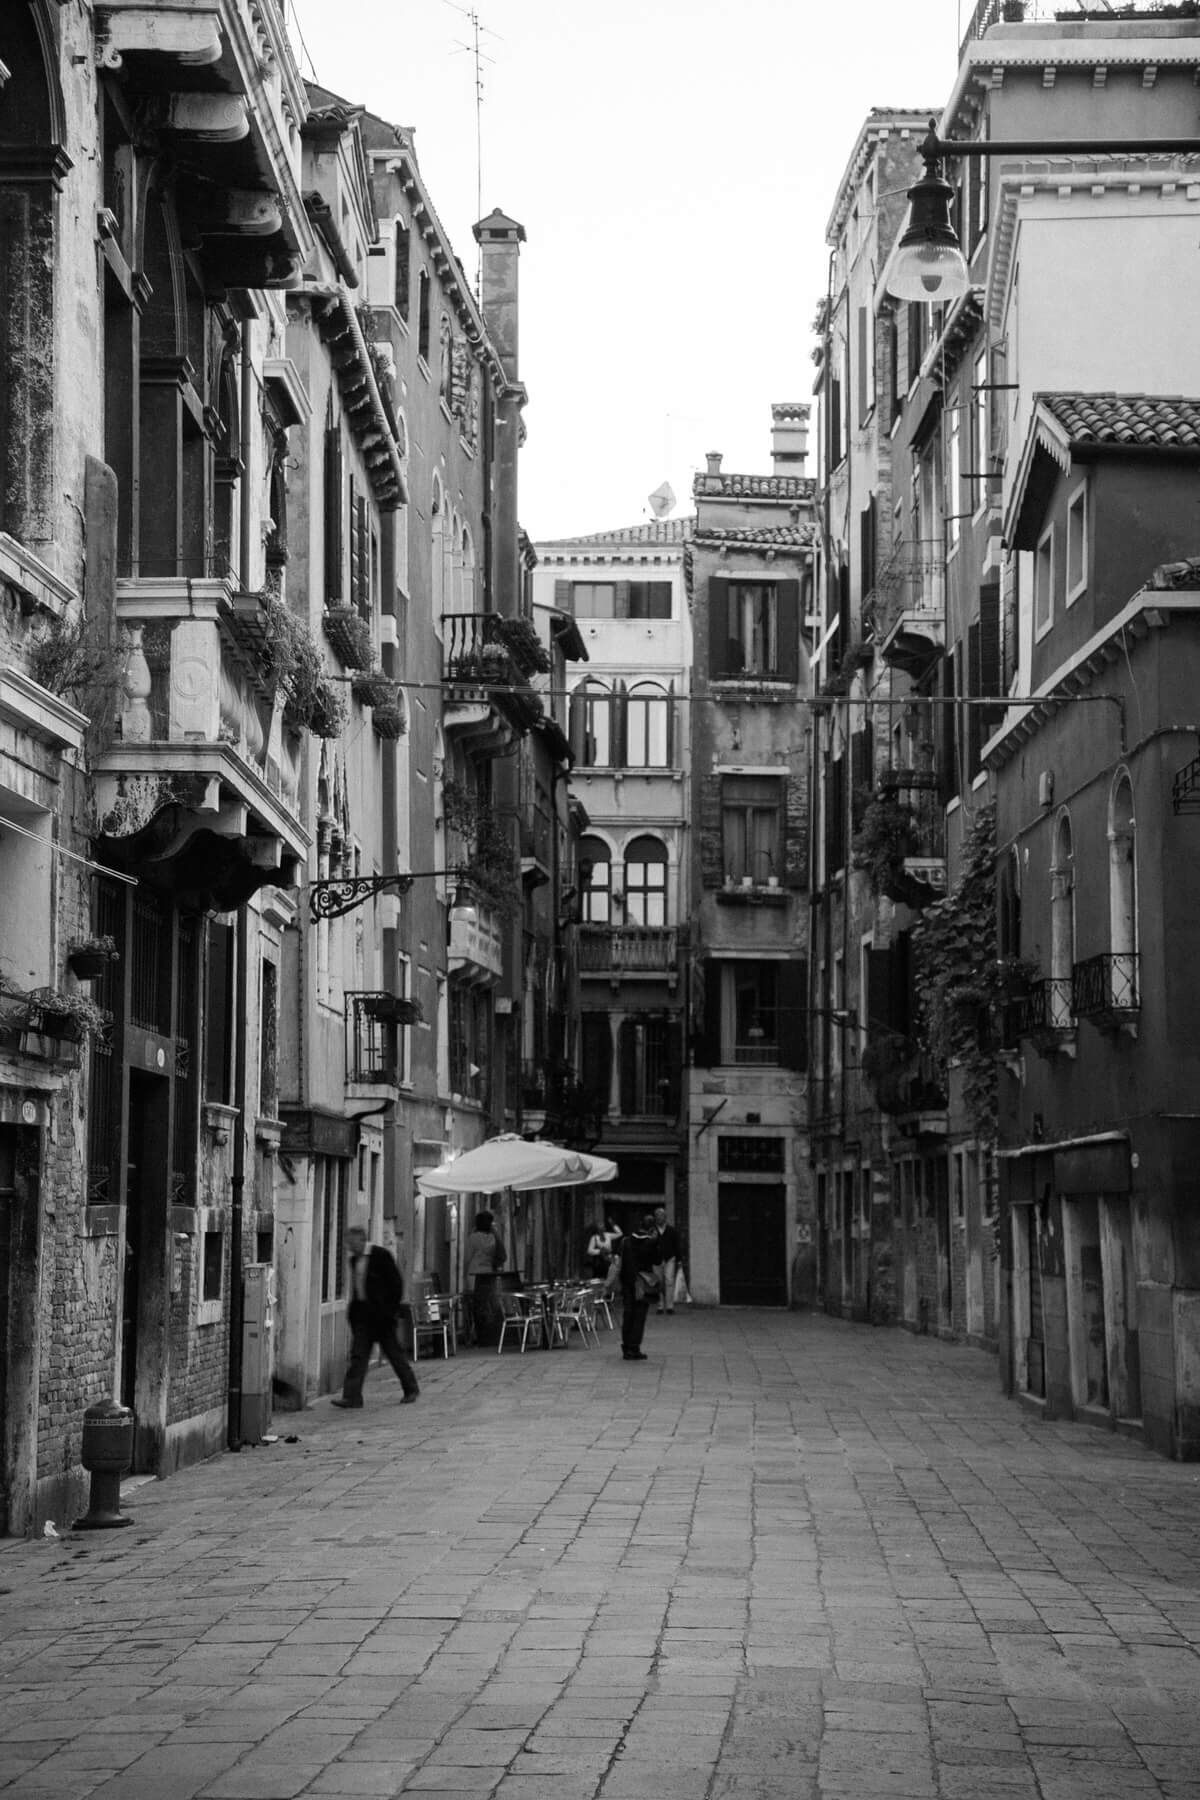 Venice-Italy-black-and-white-fine-art-photography-by-Studio-L-photographer-Laura-Schneider-_3876